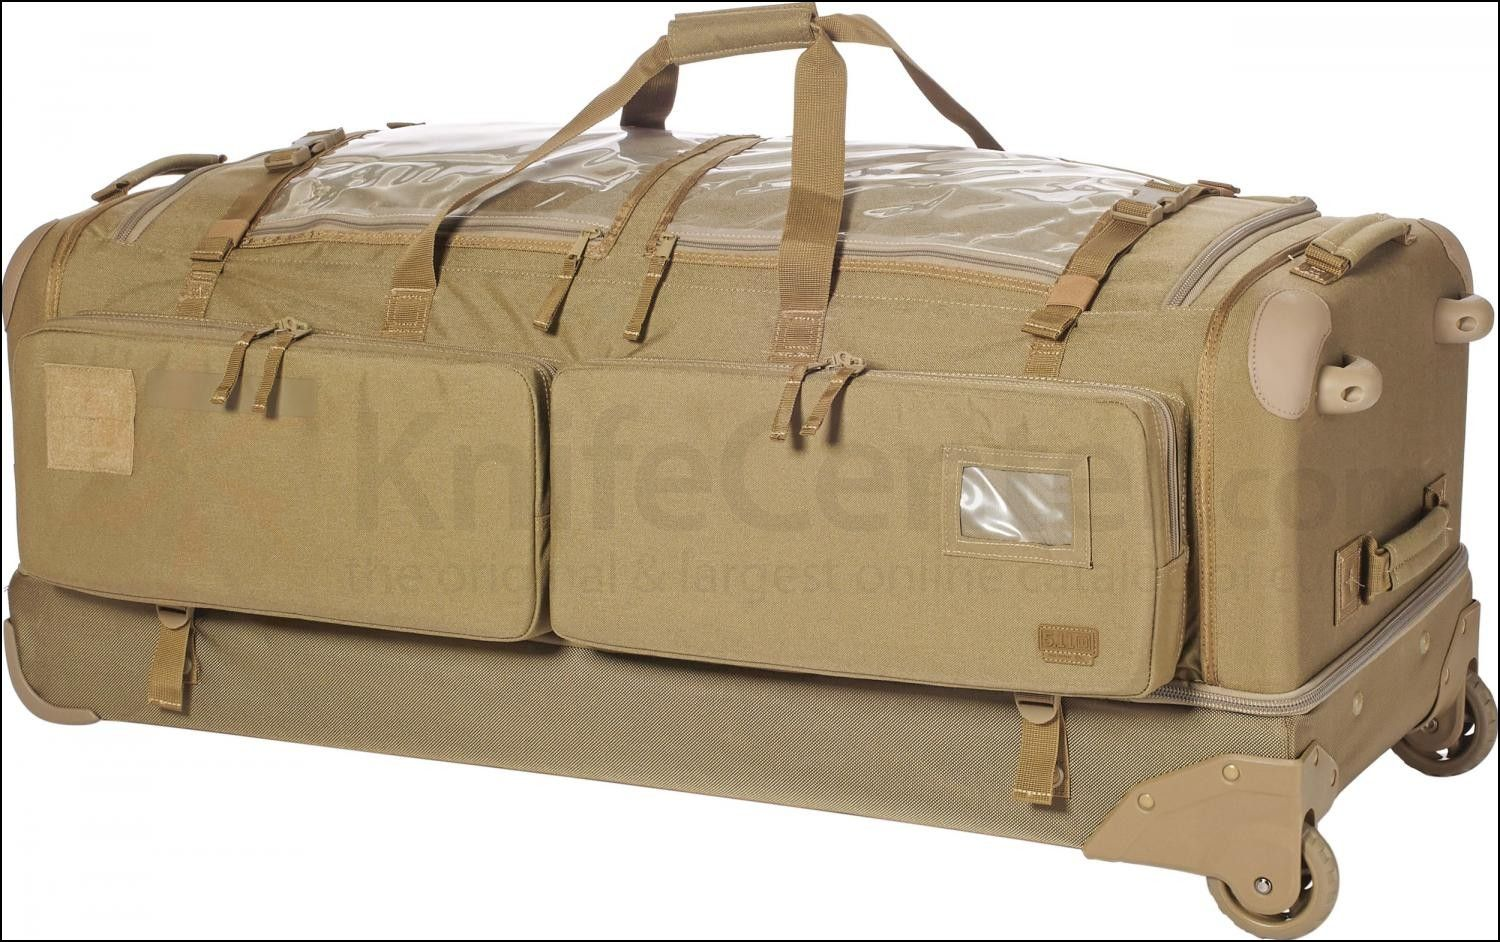 Large Duffle Bag With Wheels Cheap Ceagesp